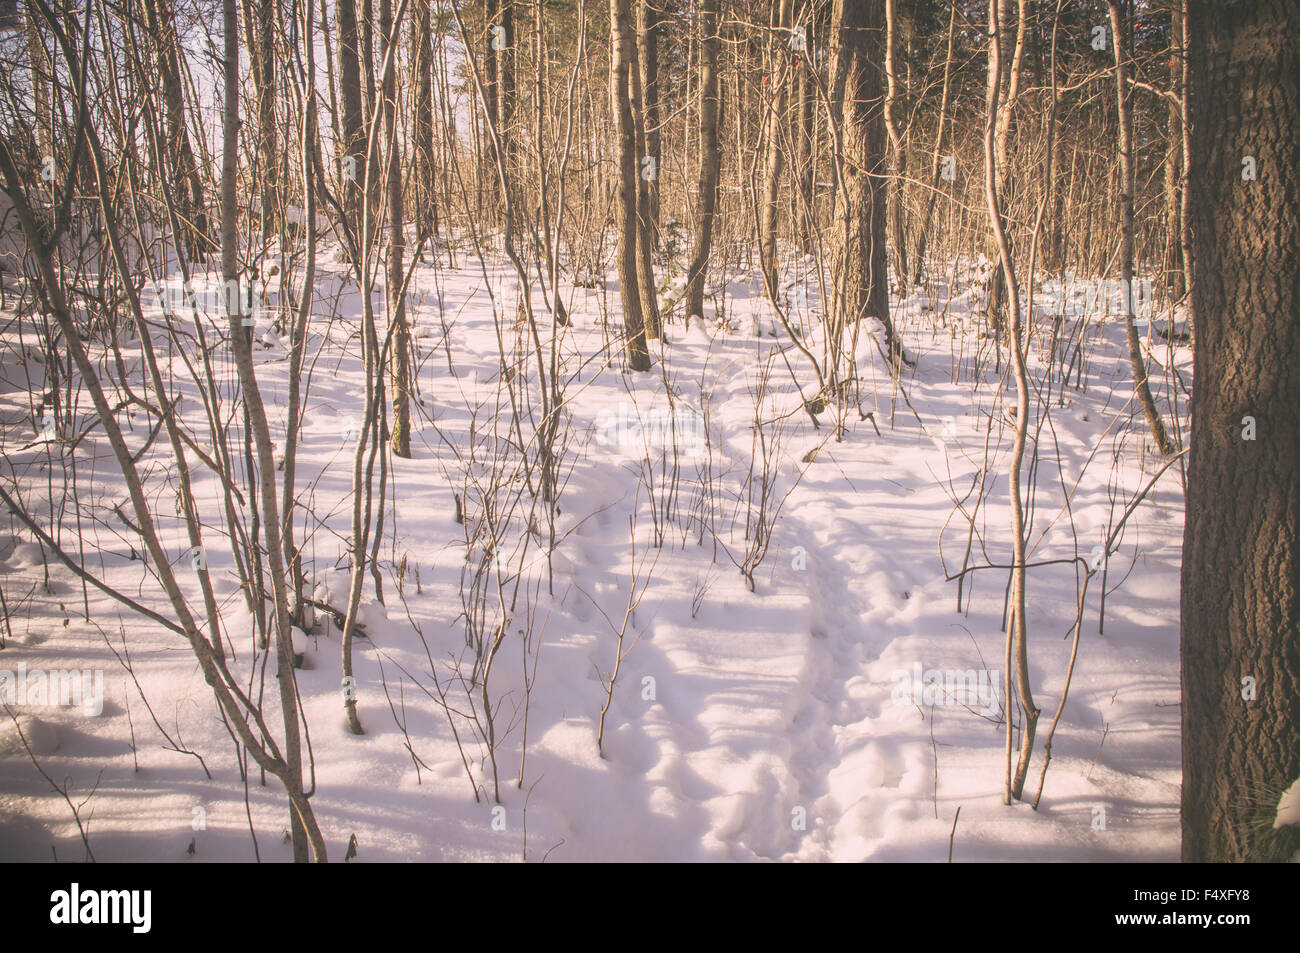 Animal tracks in the snow in the winter forest - Stock Image